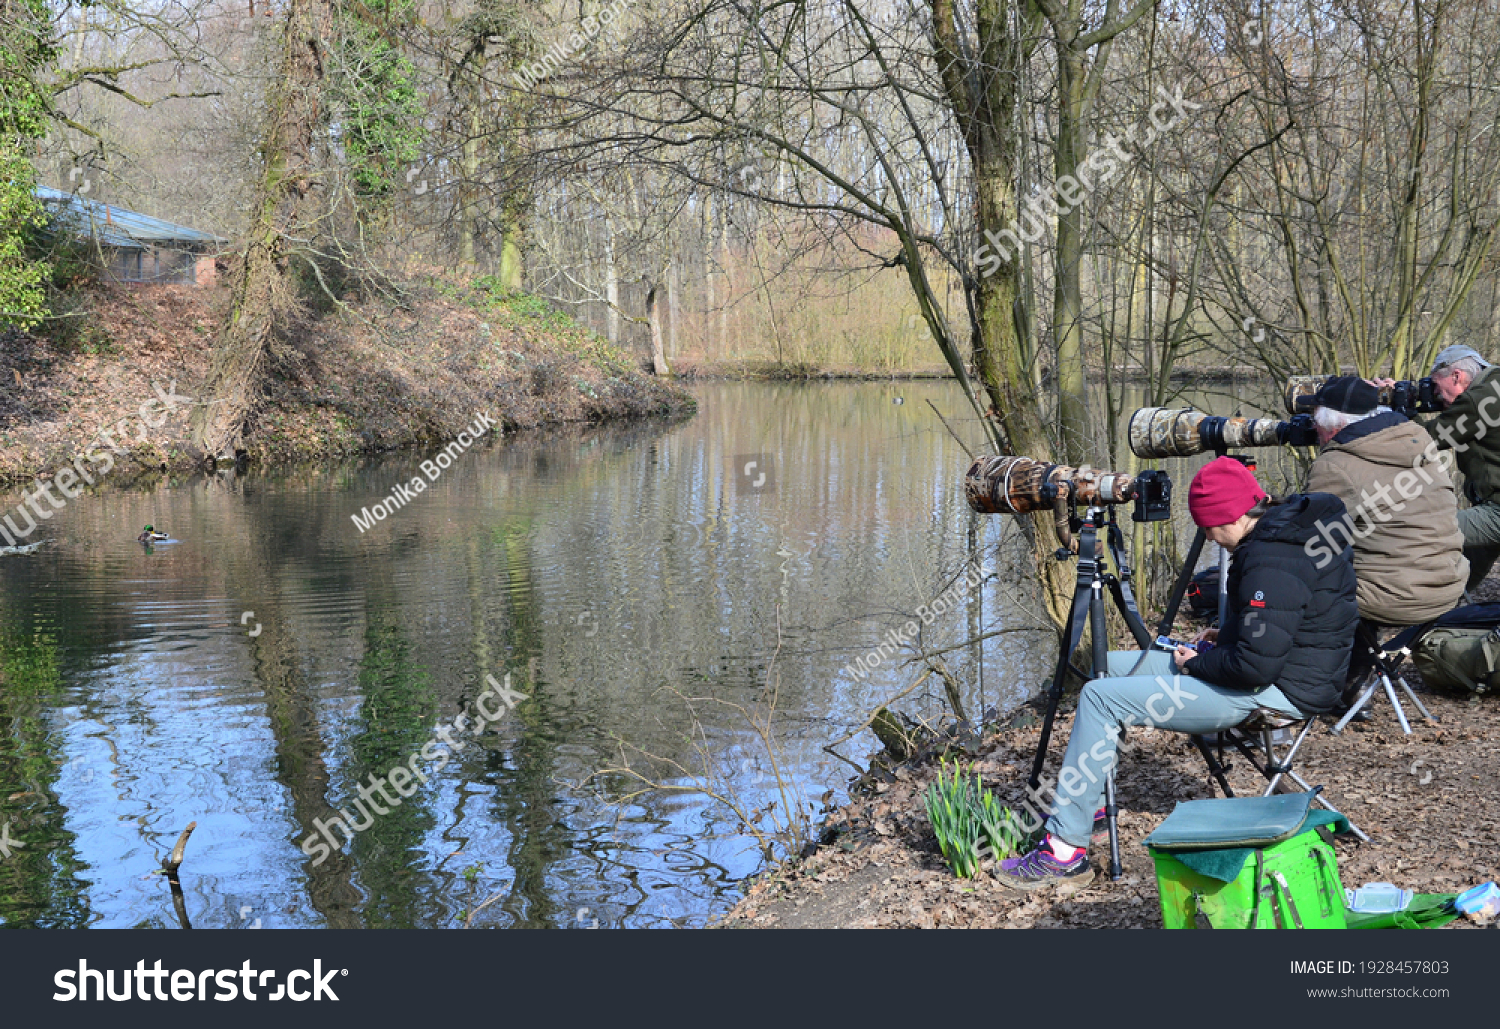 Mönchengladbach,Germany,March 2021, a group of birdwatchers in a park